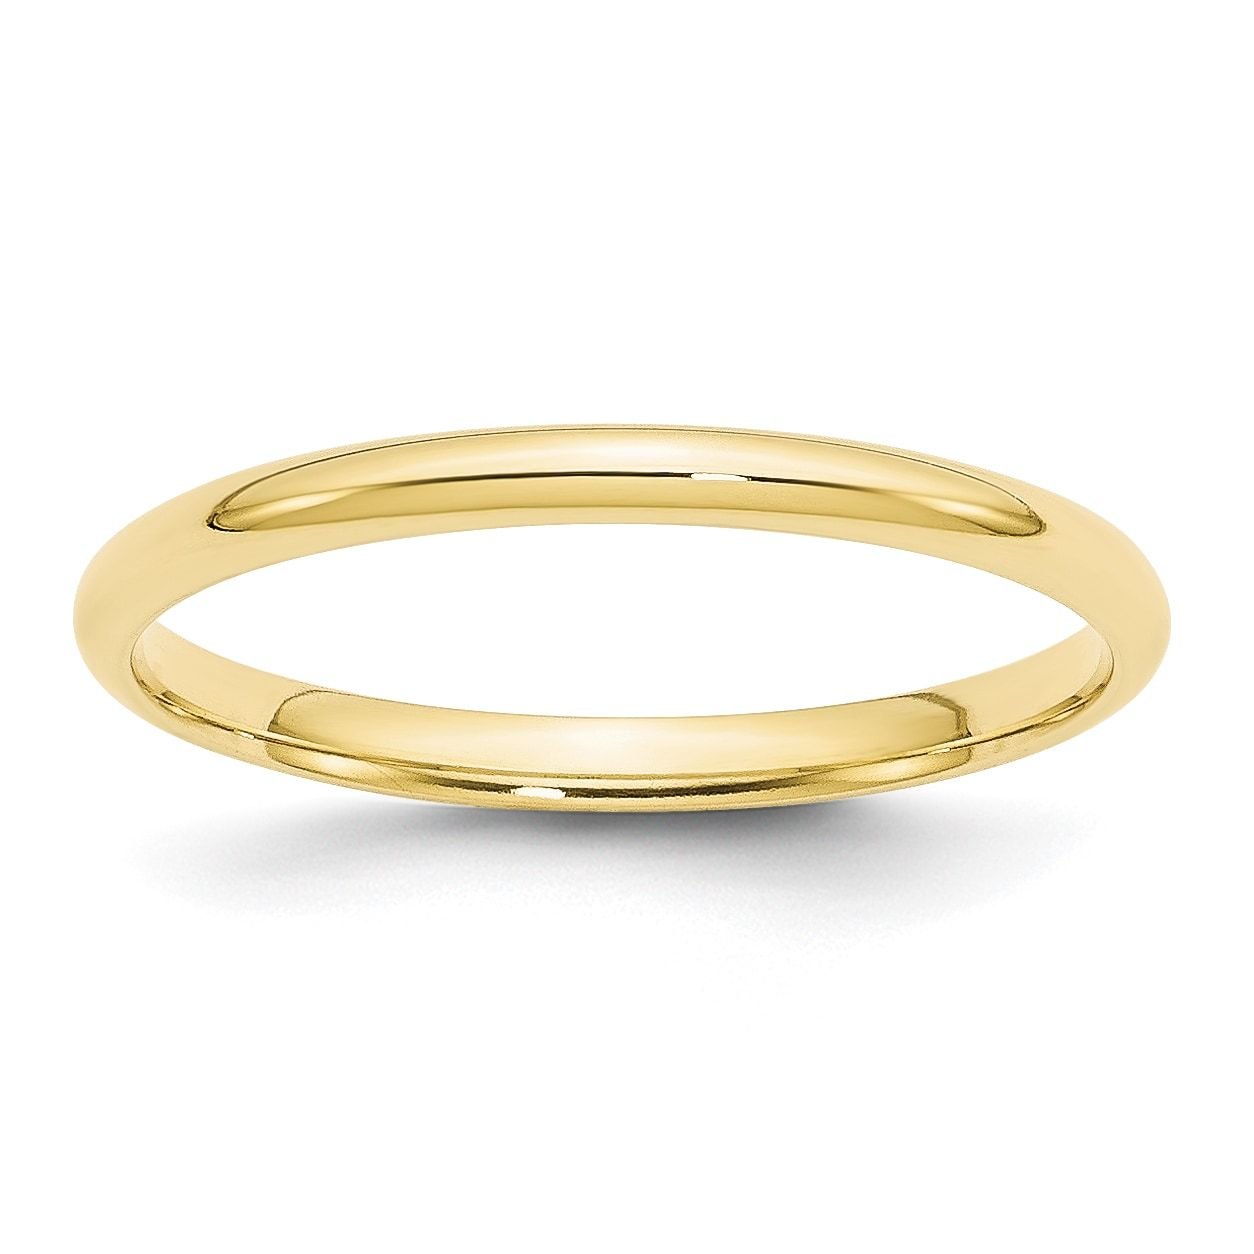 10 Karat Yellow Gold 2mm Lightweight Comfort Fit Band By Versil Comfort Fit Band Comfort Fit Wedding Band 14k Yellow Gold Wedding Band